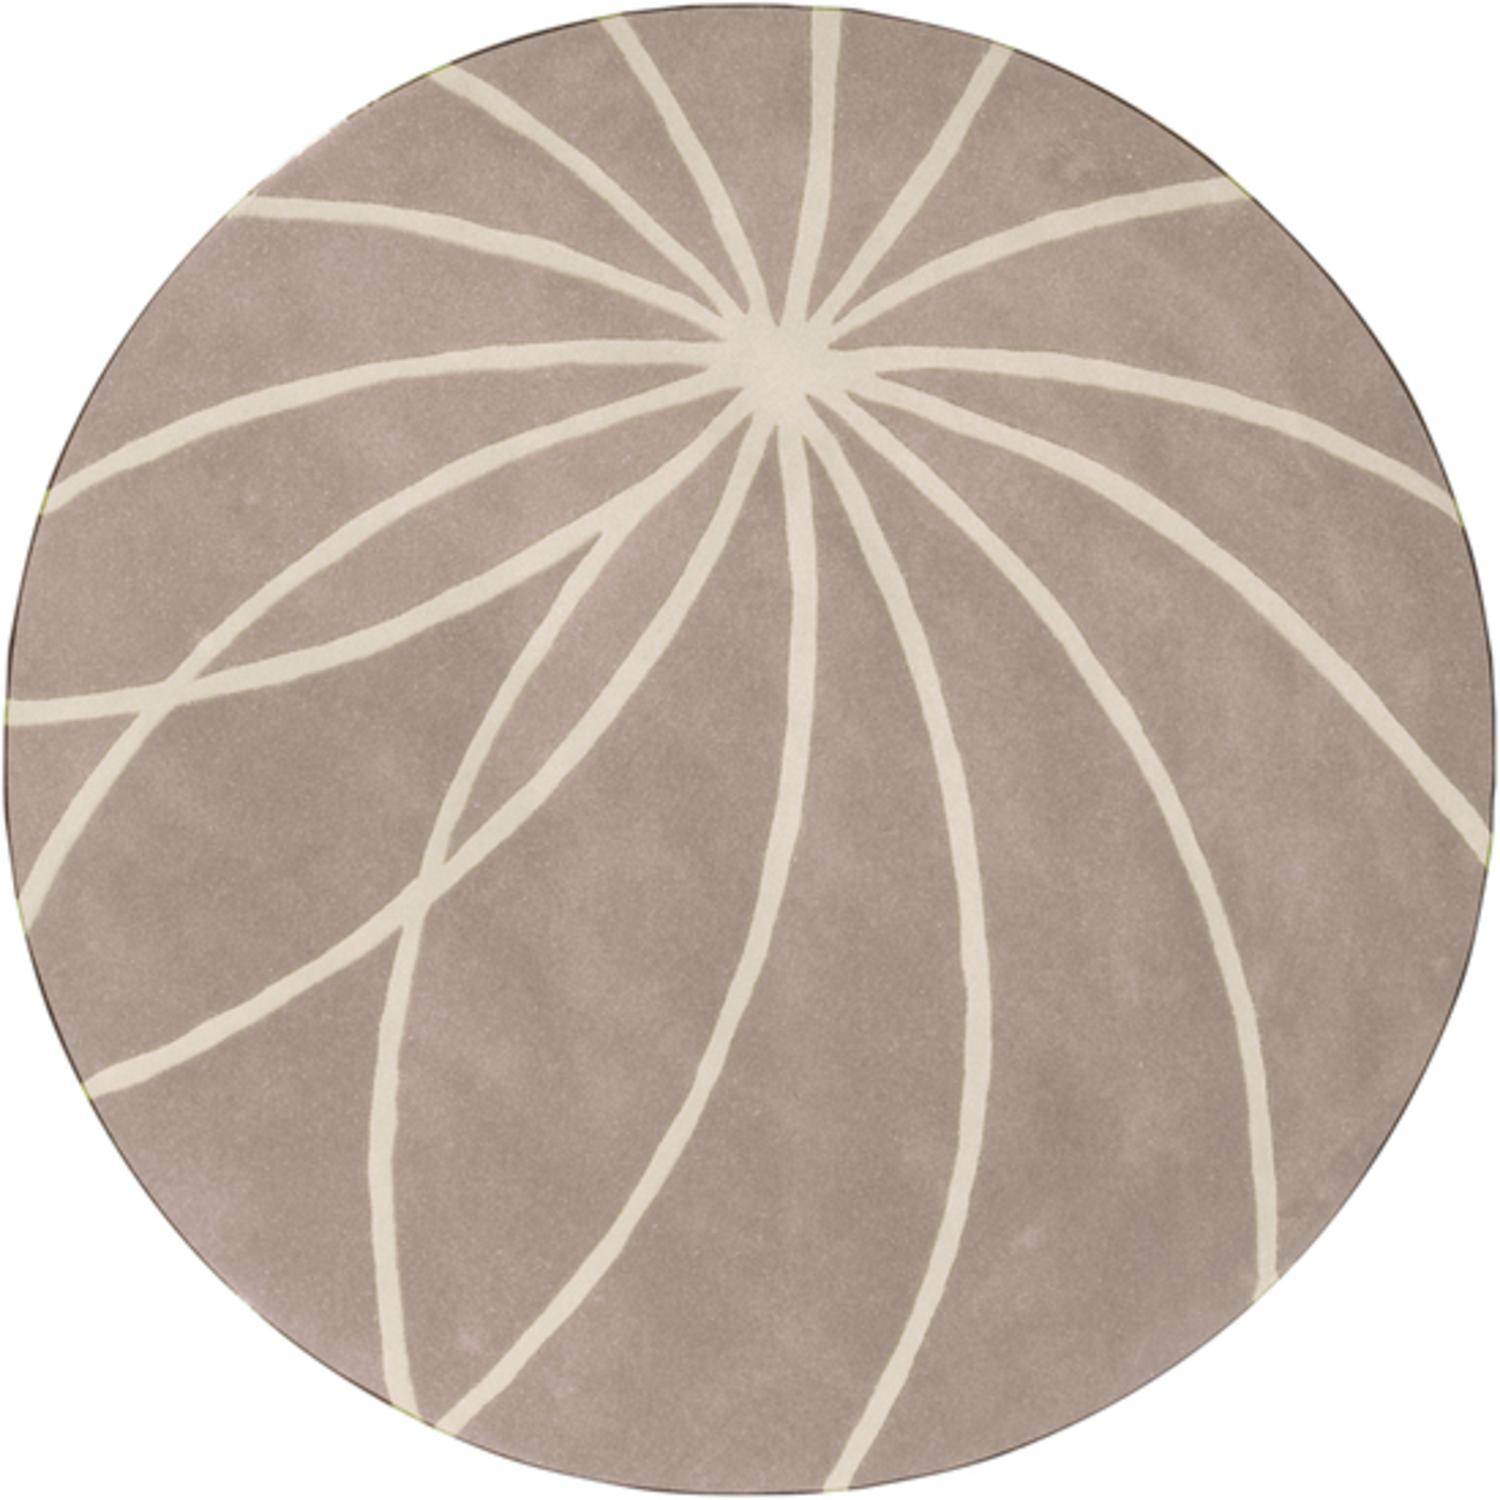 9.75' Plasma Elektra White and Safari Tan Hand Tufted Wool Round Area Throw Rug